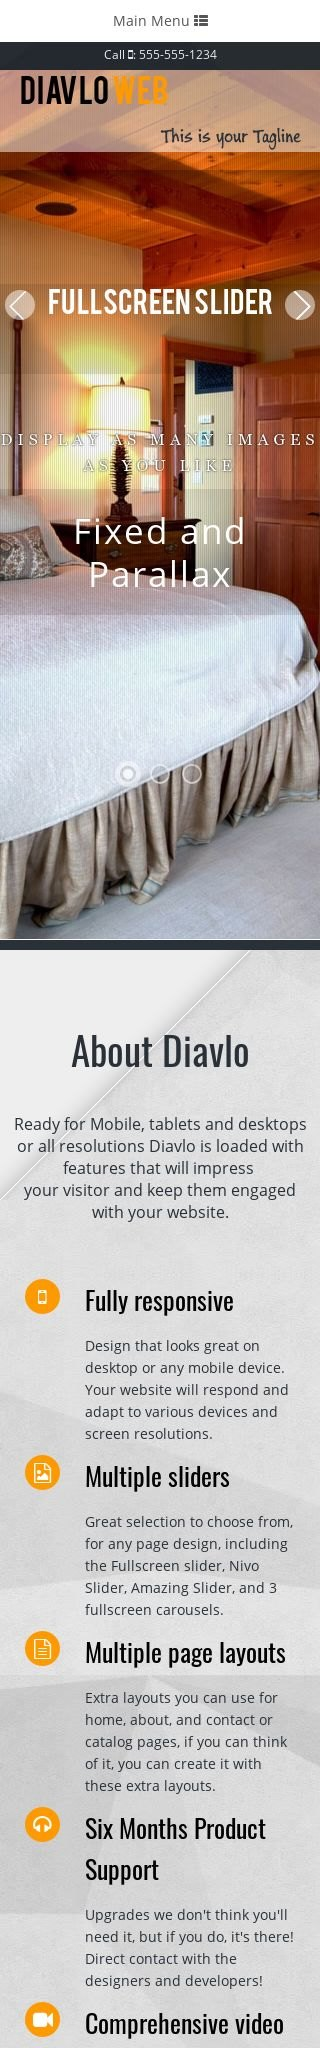 Mobile: Bed-and-breakfast Web Template